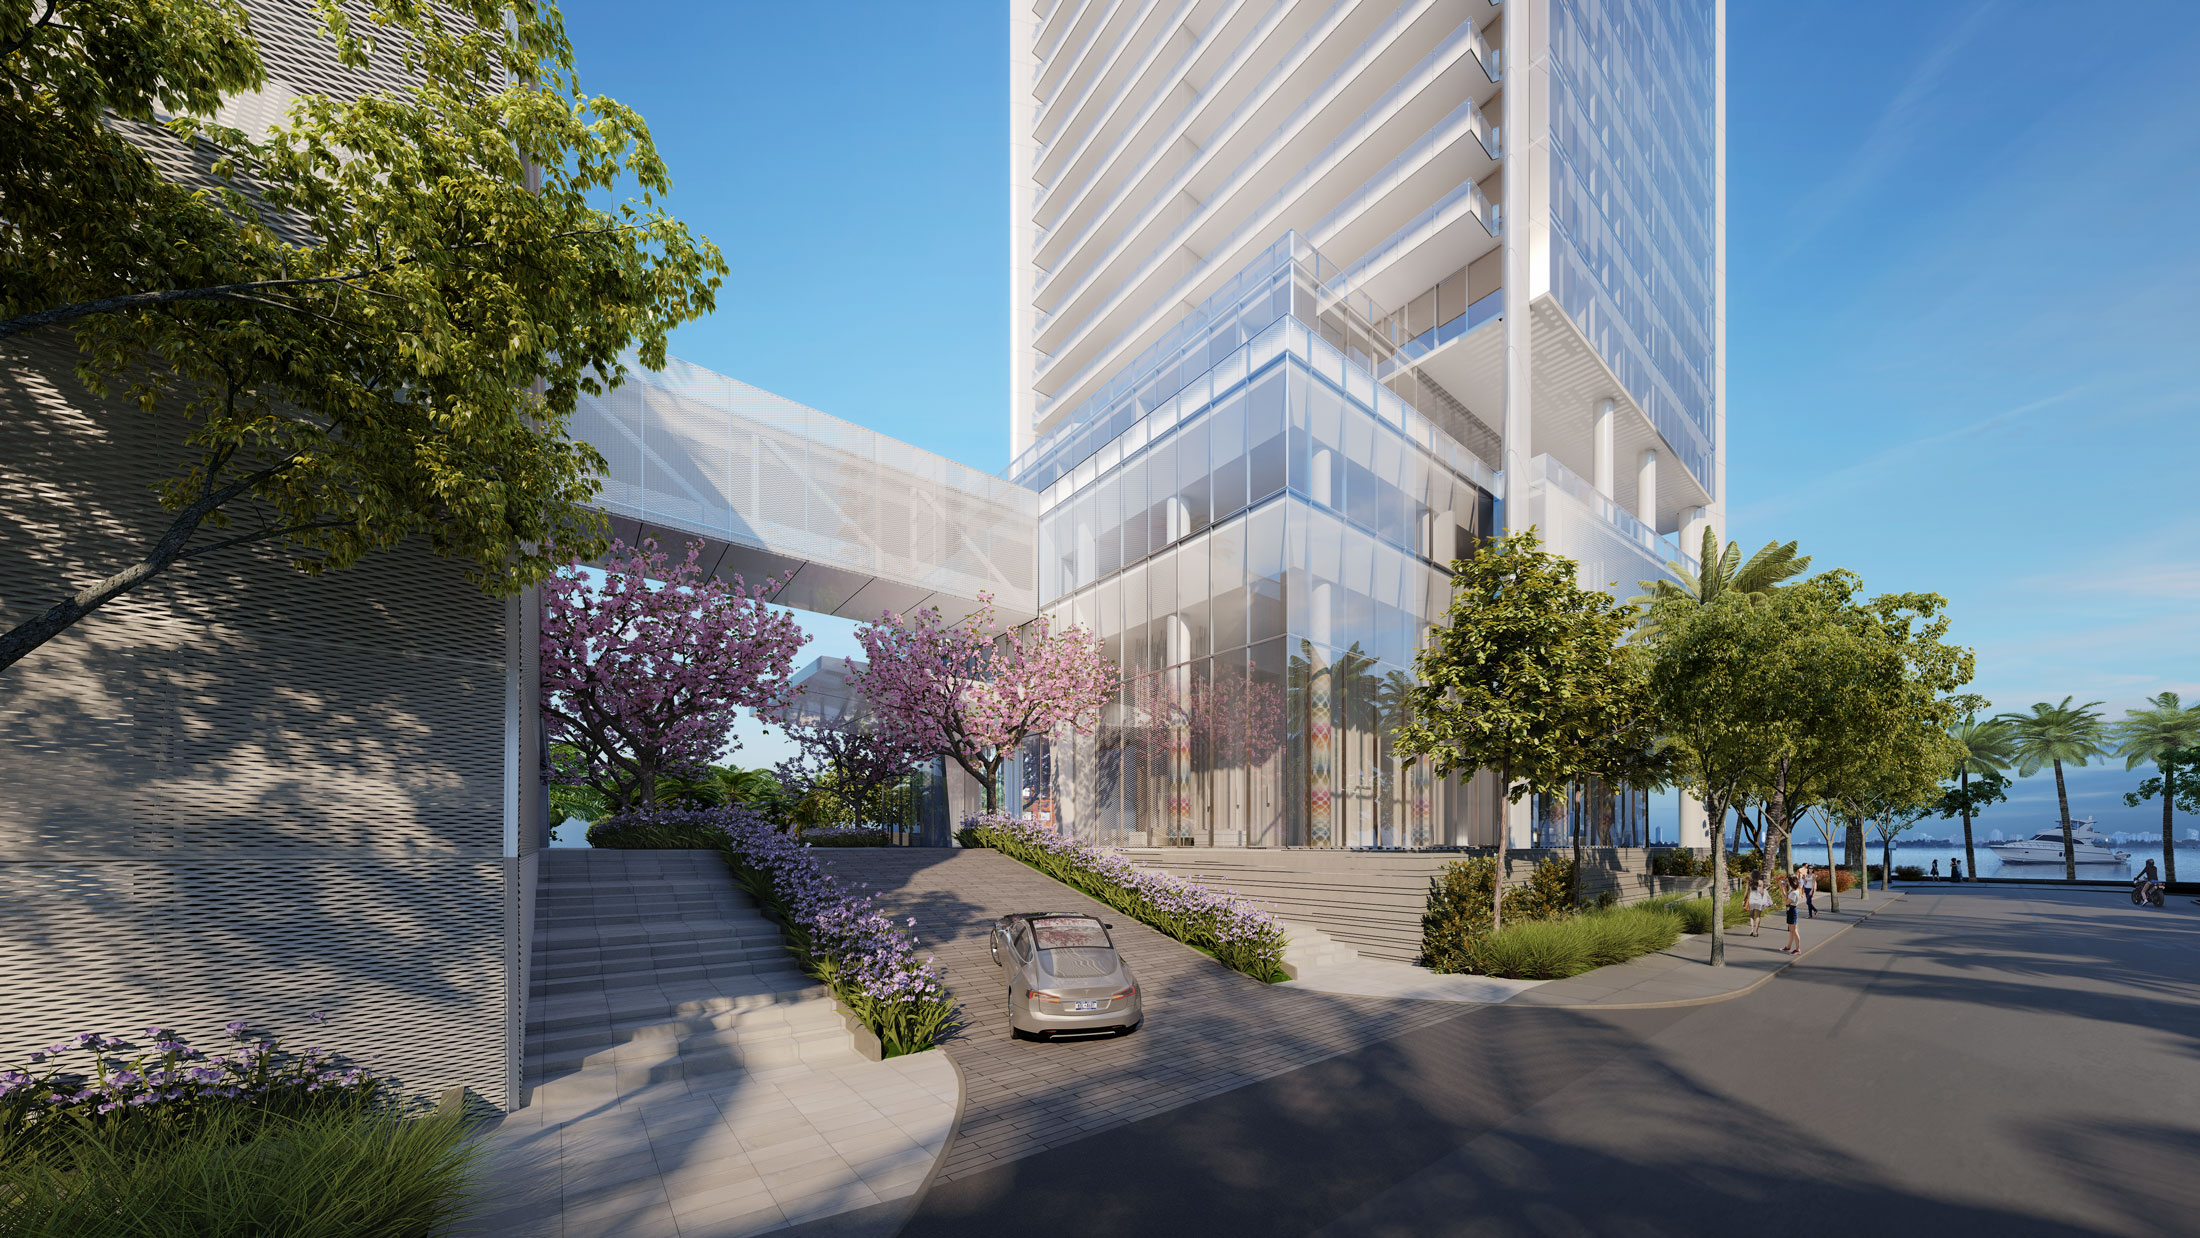 Architectural Rendering of the entrance of the Missoni Baia project located in Miami, Florida